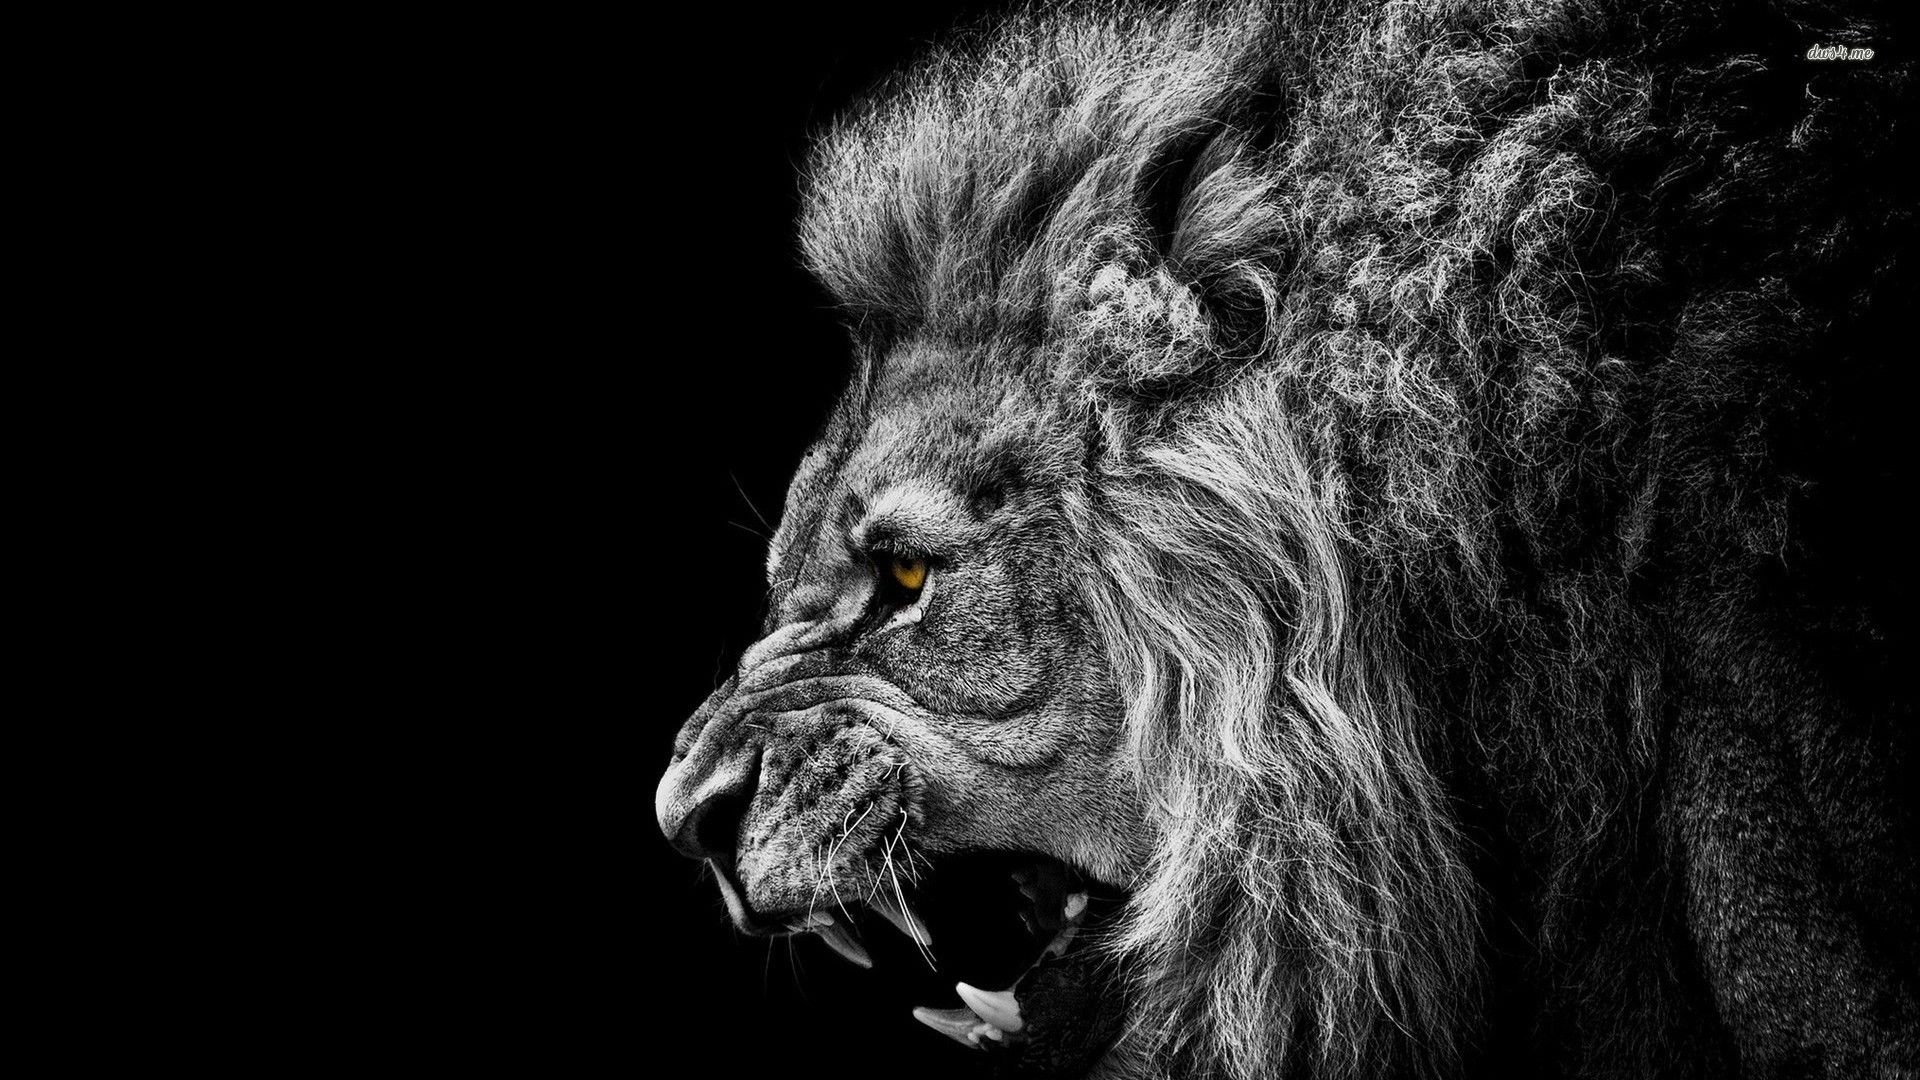 Angry Lion Wallpapers High Quality Resolution Download Wallpaper Laptop Hd In 2020 Lion Wallpaper Lion Hd Wallpaper Black And White Lion